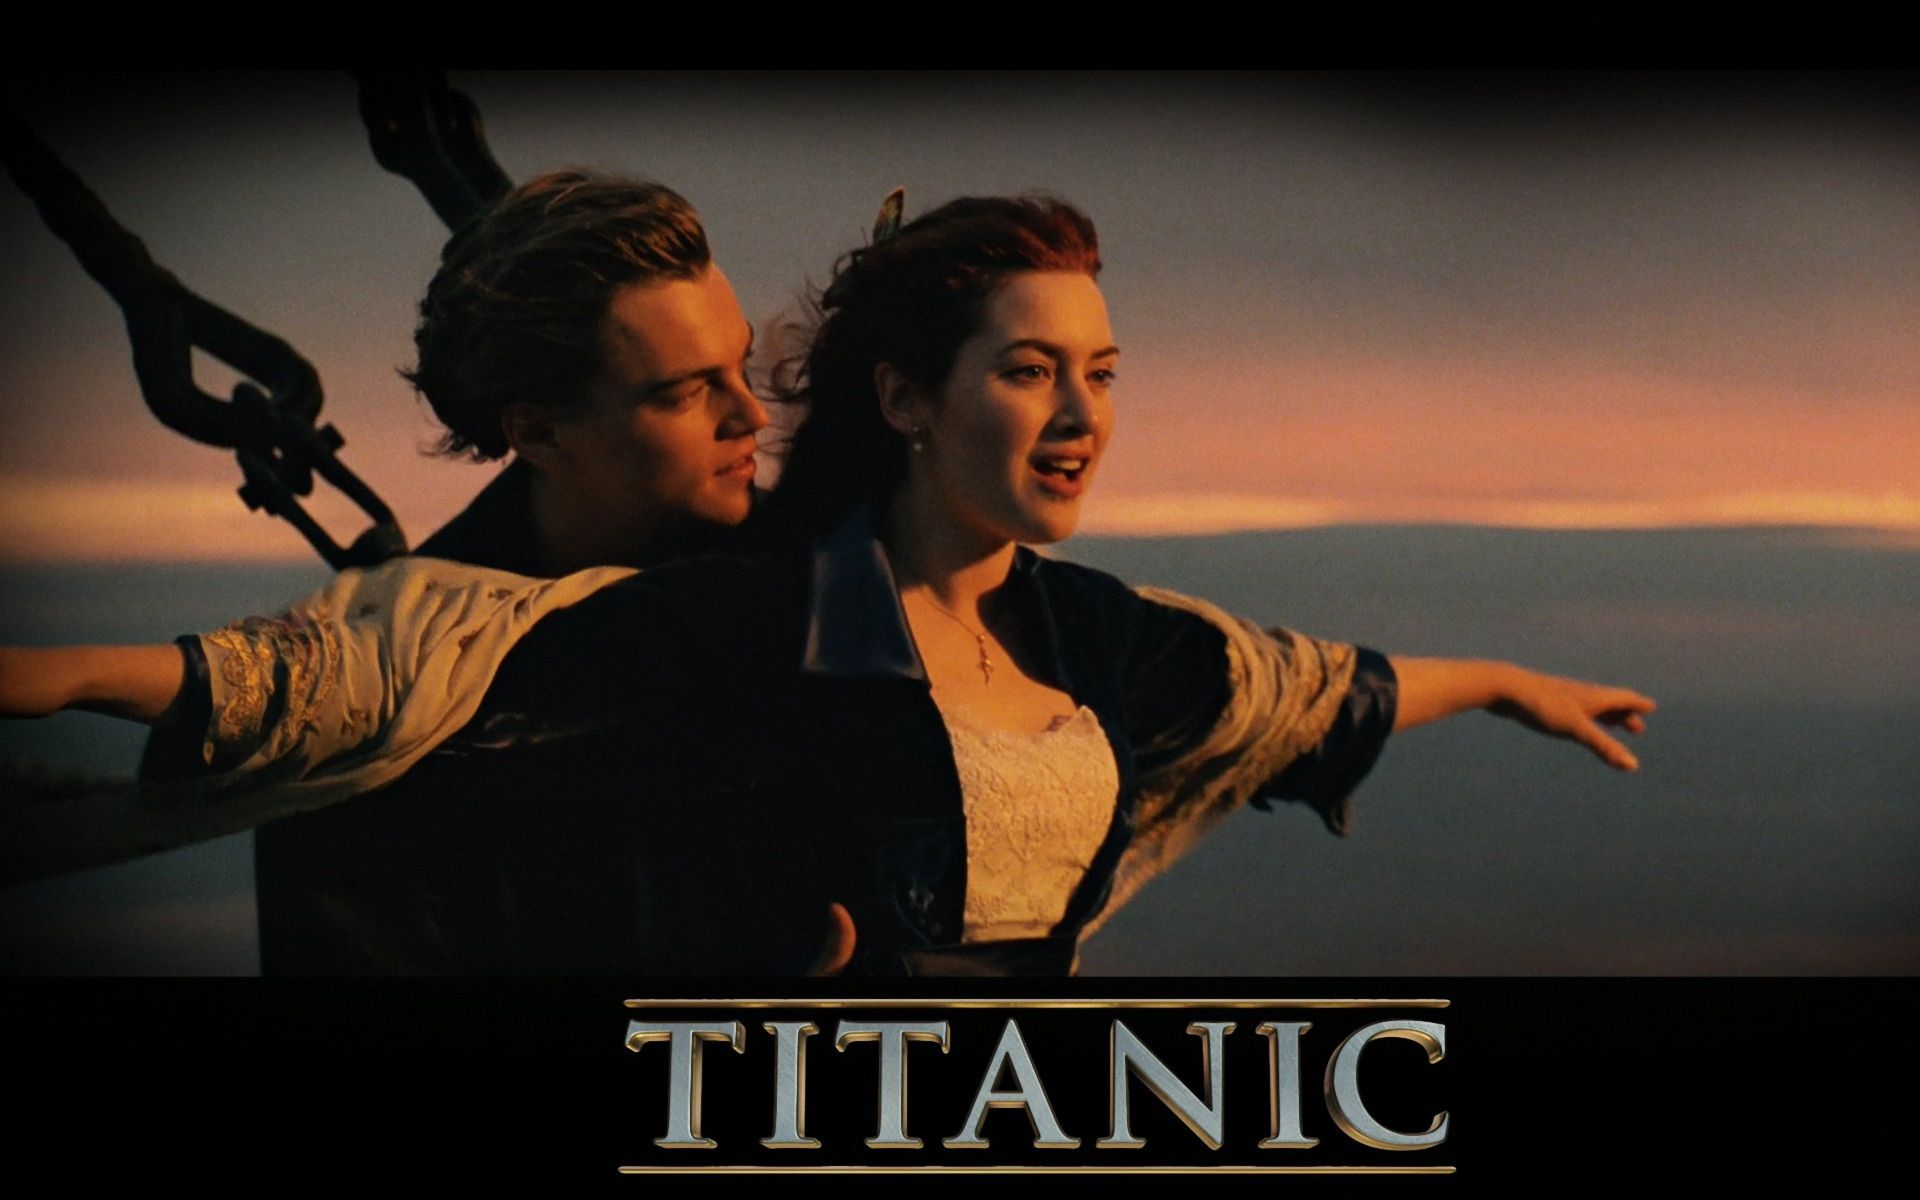 Hd Wallpapers Widescreen 1080p 3d Titanic 3d Wallpaper Widescreen 2 Hd Desktop Wallpapers Titanic Movie Titanic Good Movies To Watch